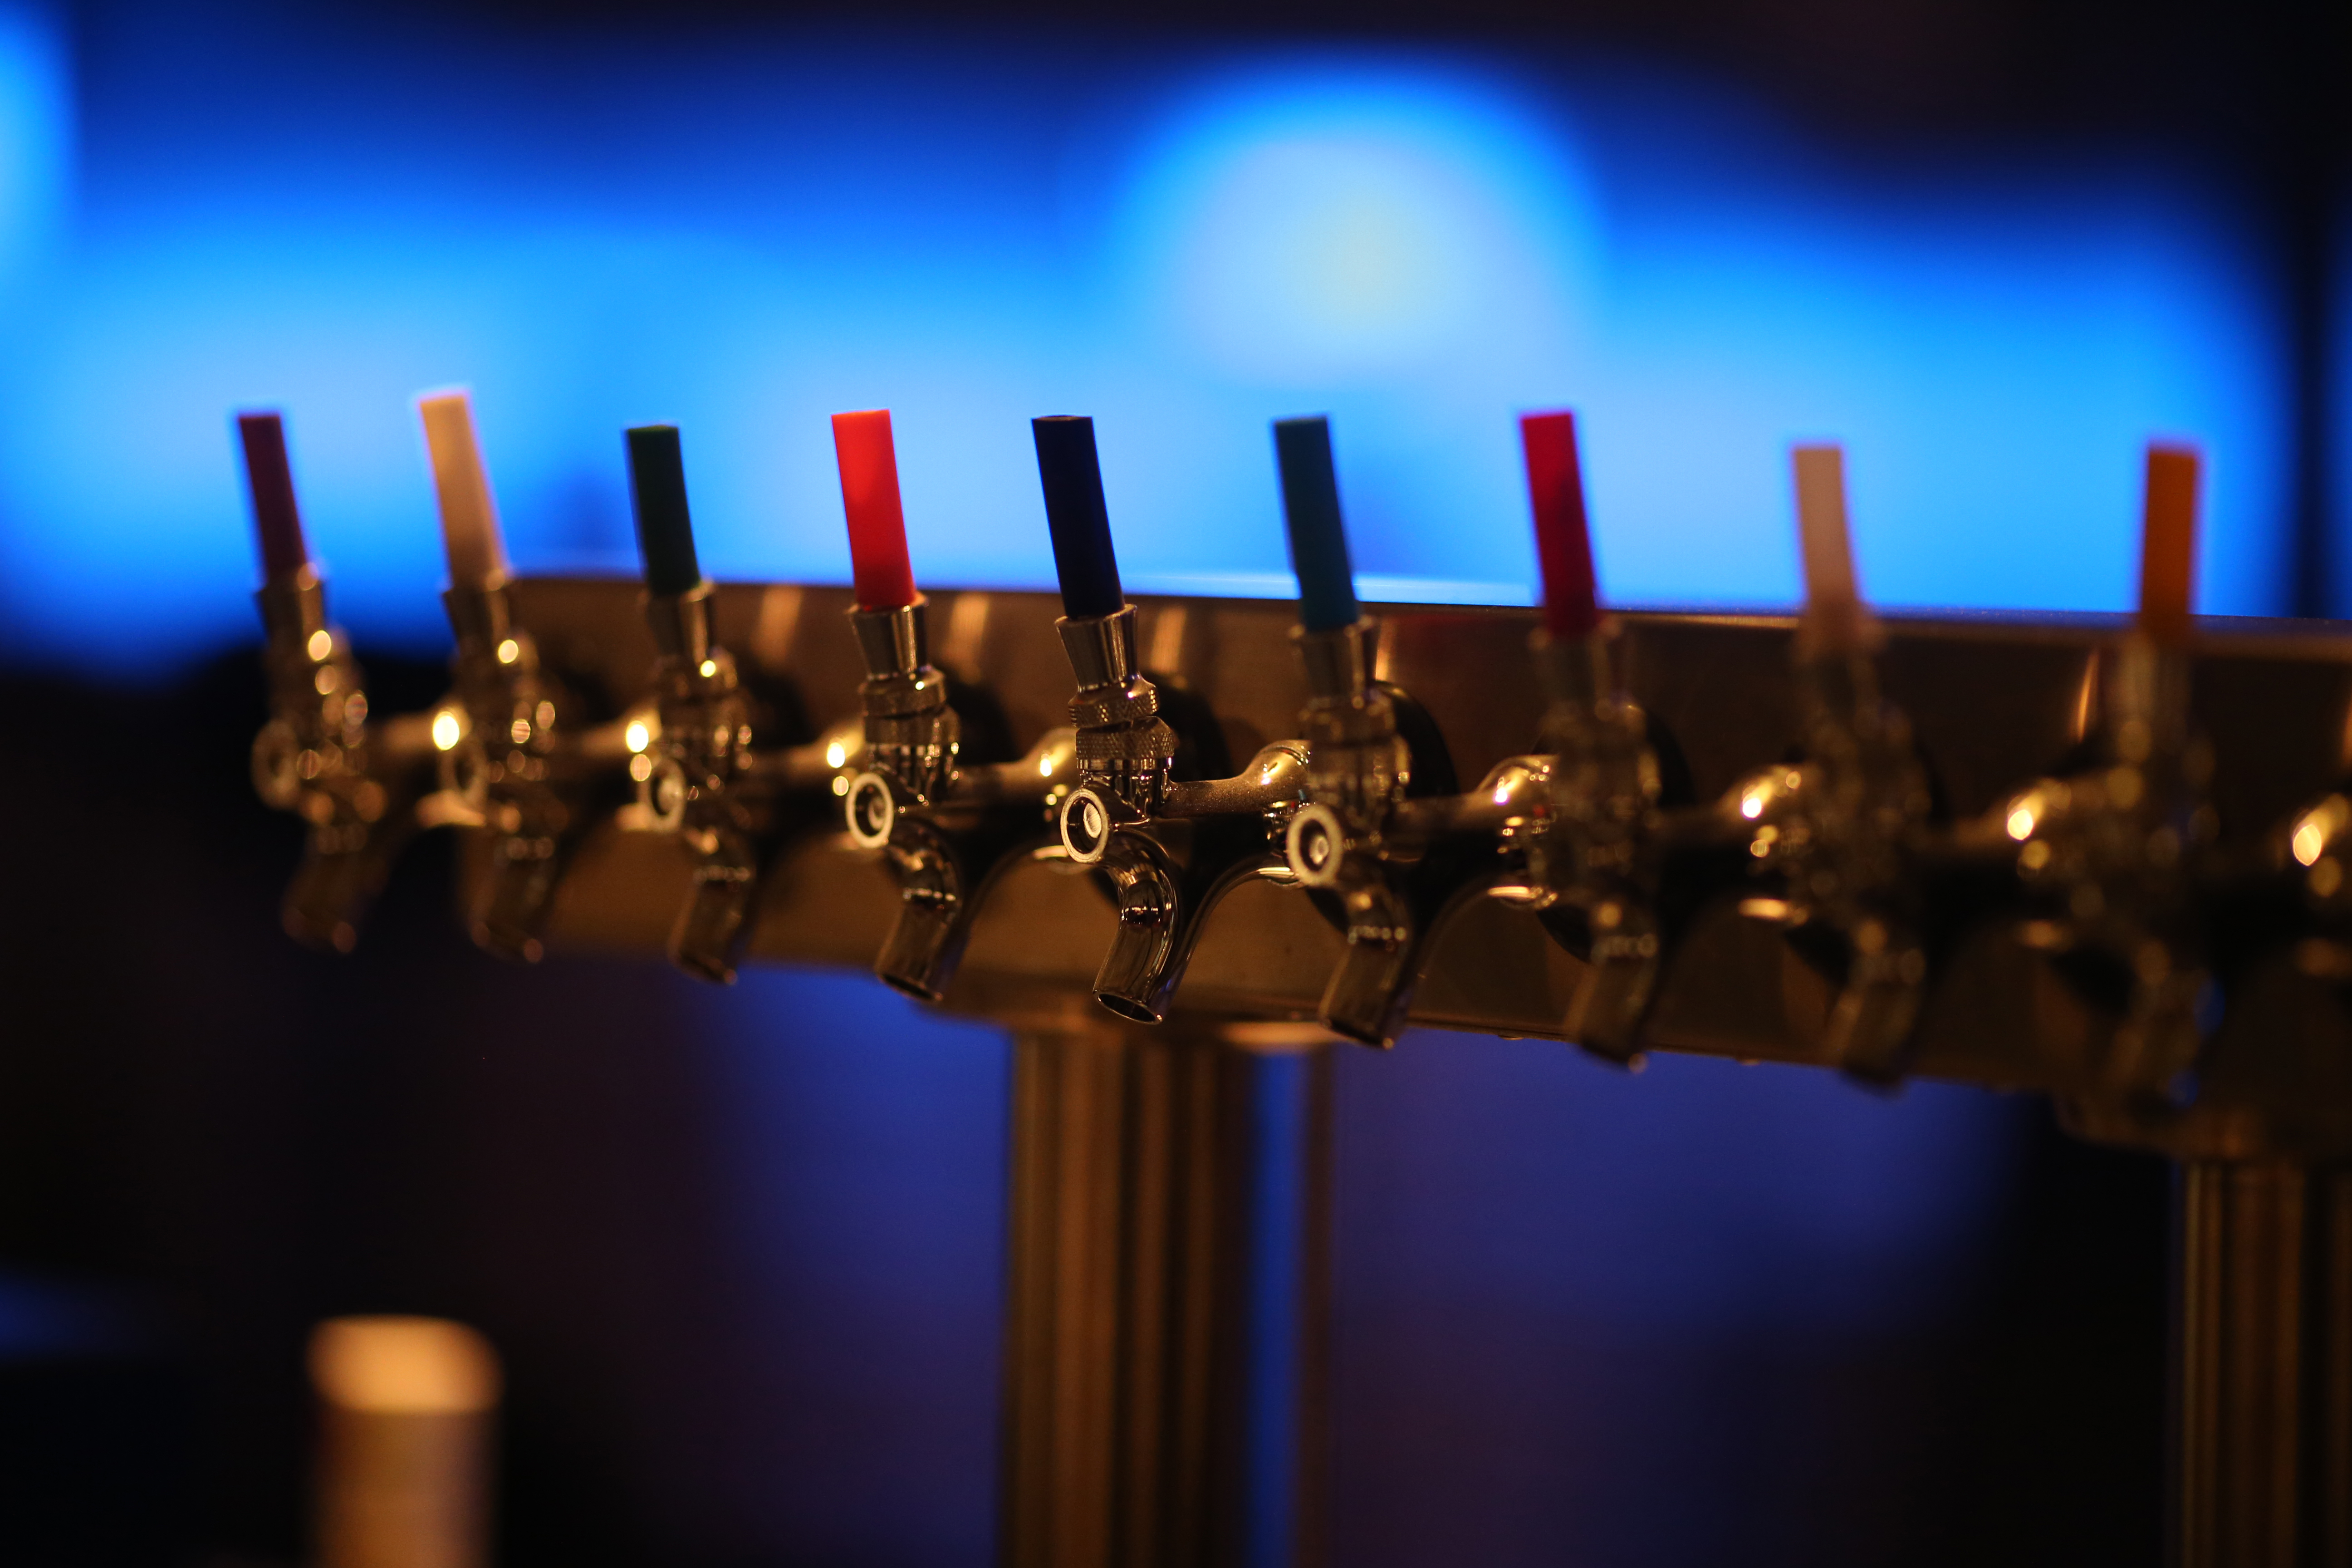 Details of the beer taps in the bar at the restored Palace Theater in St Paul Thursday February 23, 2017 in St. Paul, MN.] JERRY HOLT • jerry.holt@startribune.com